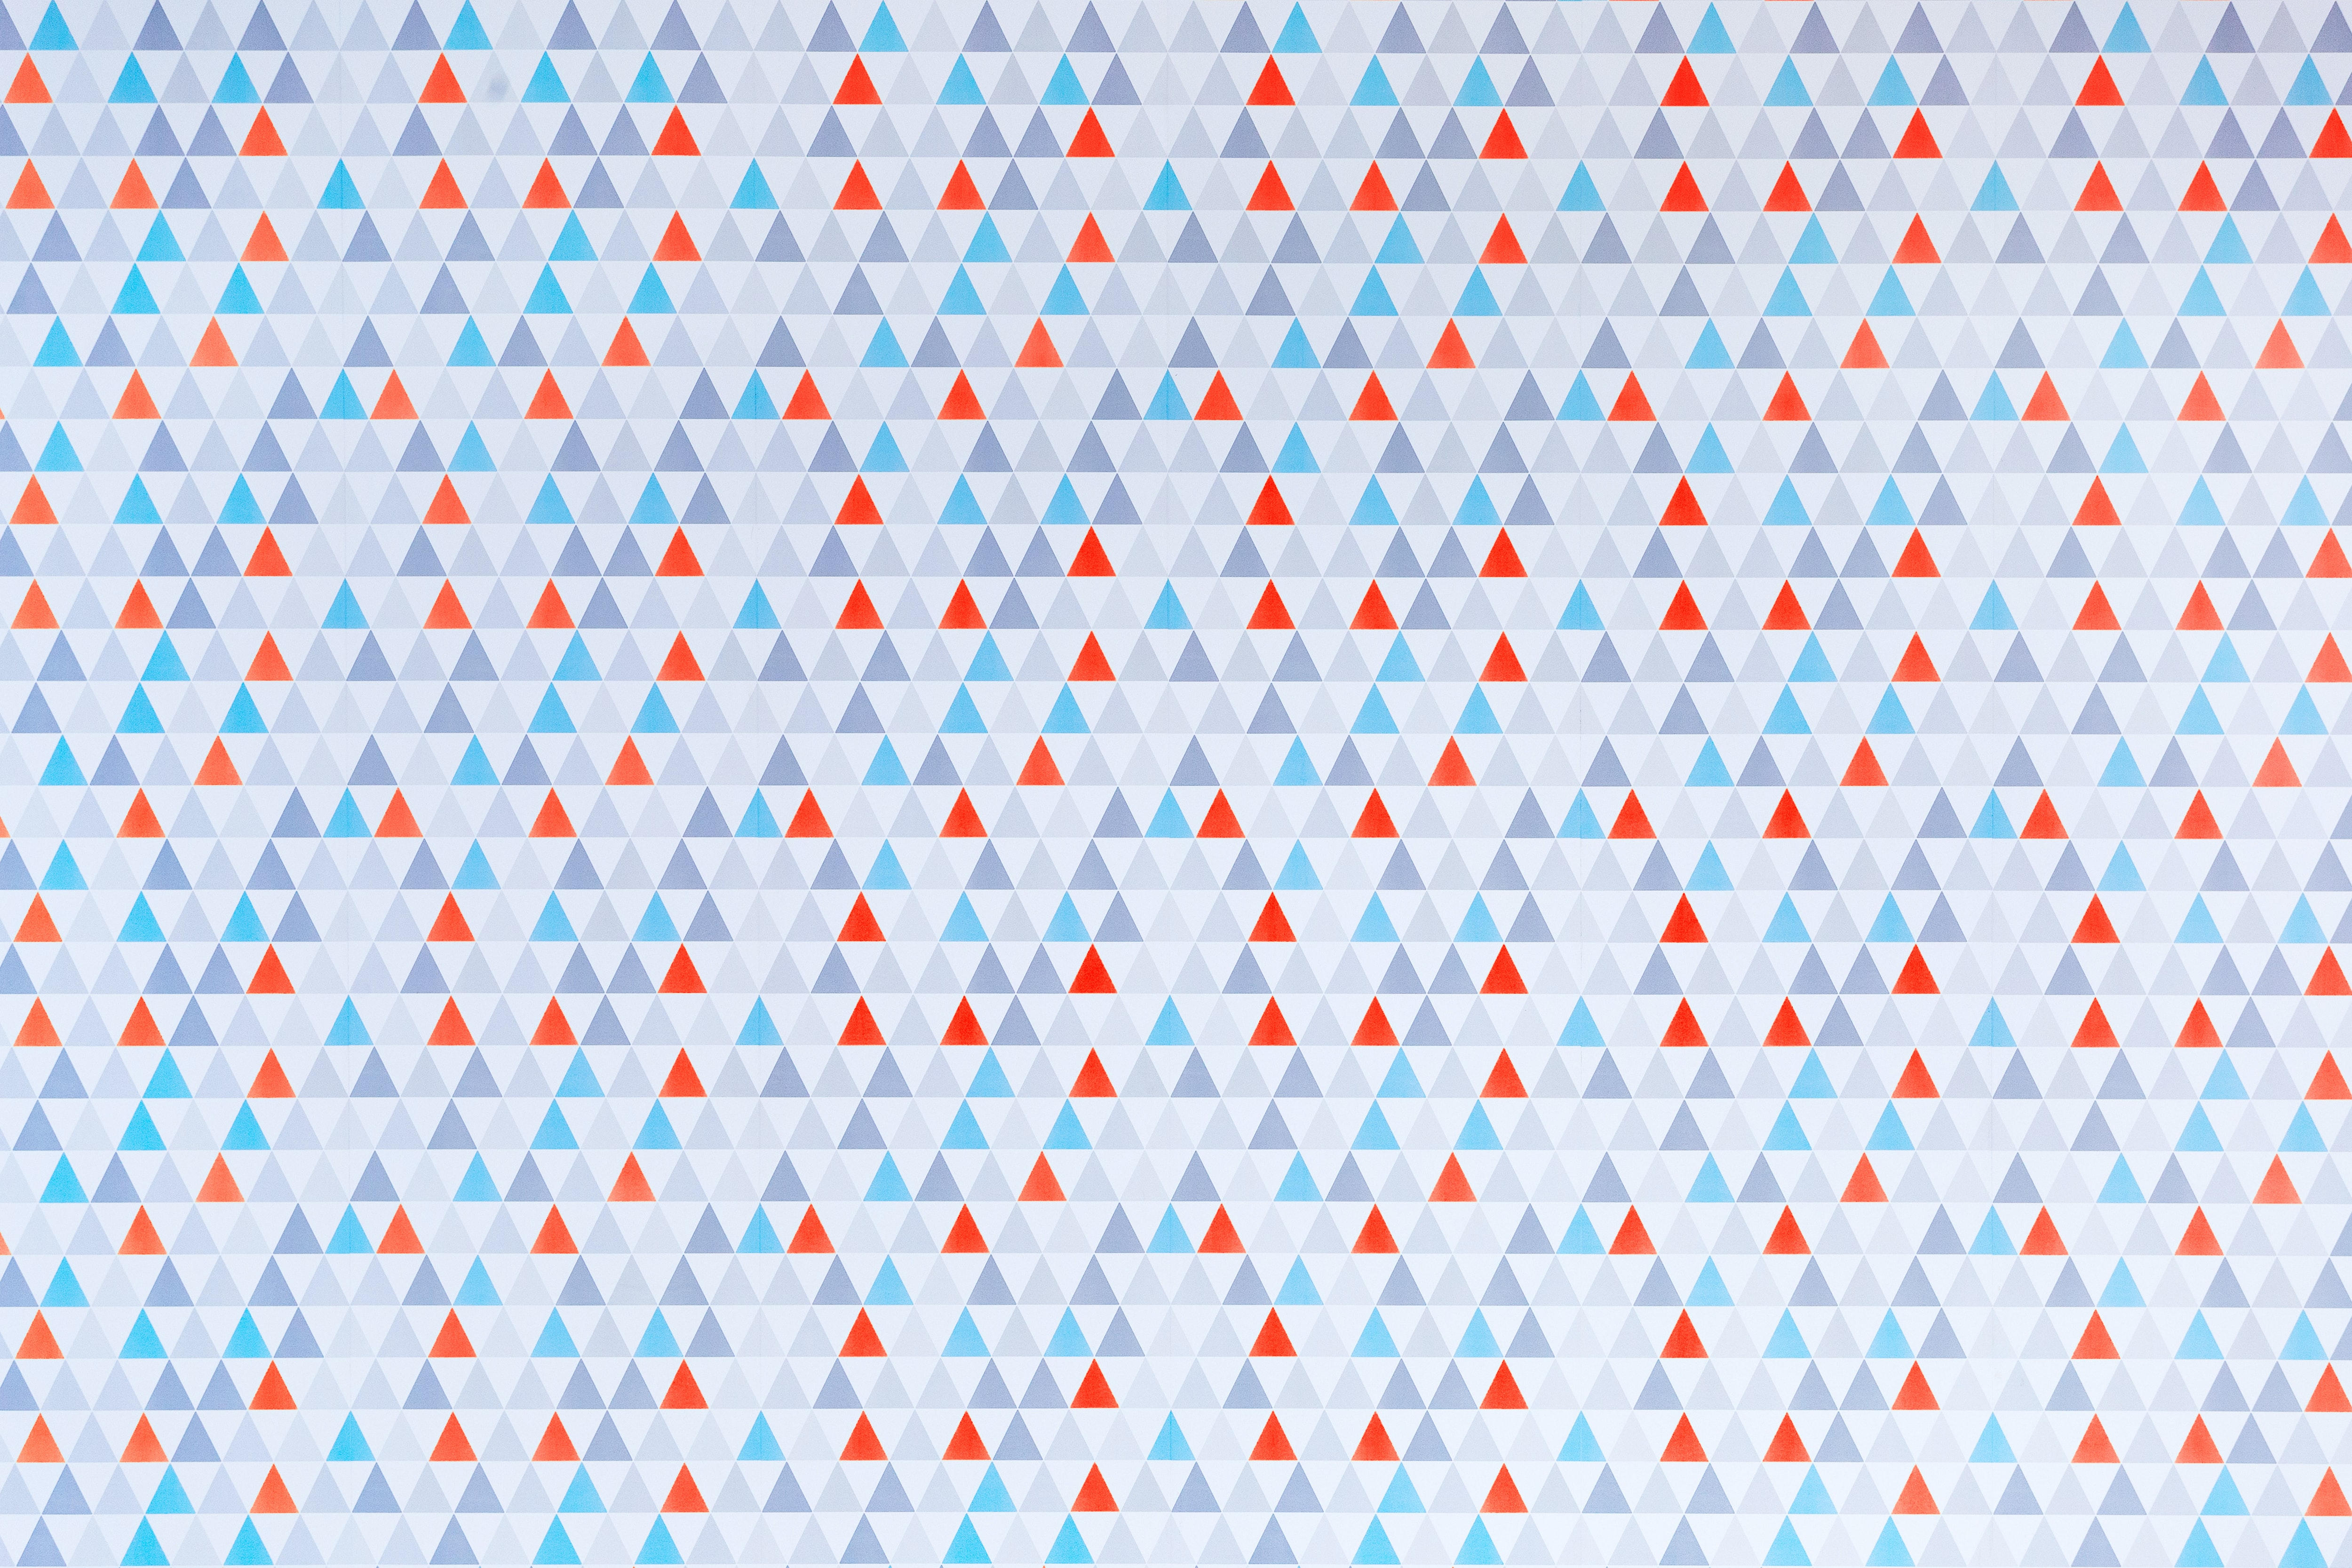 A triangle texture pattern.